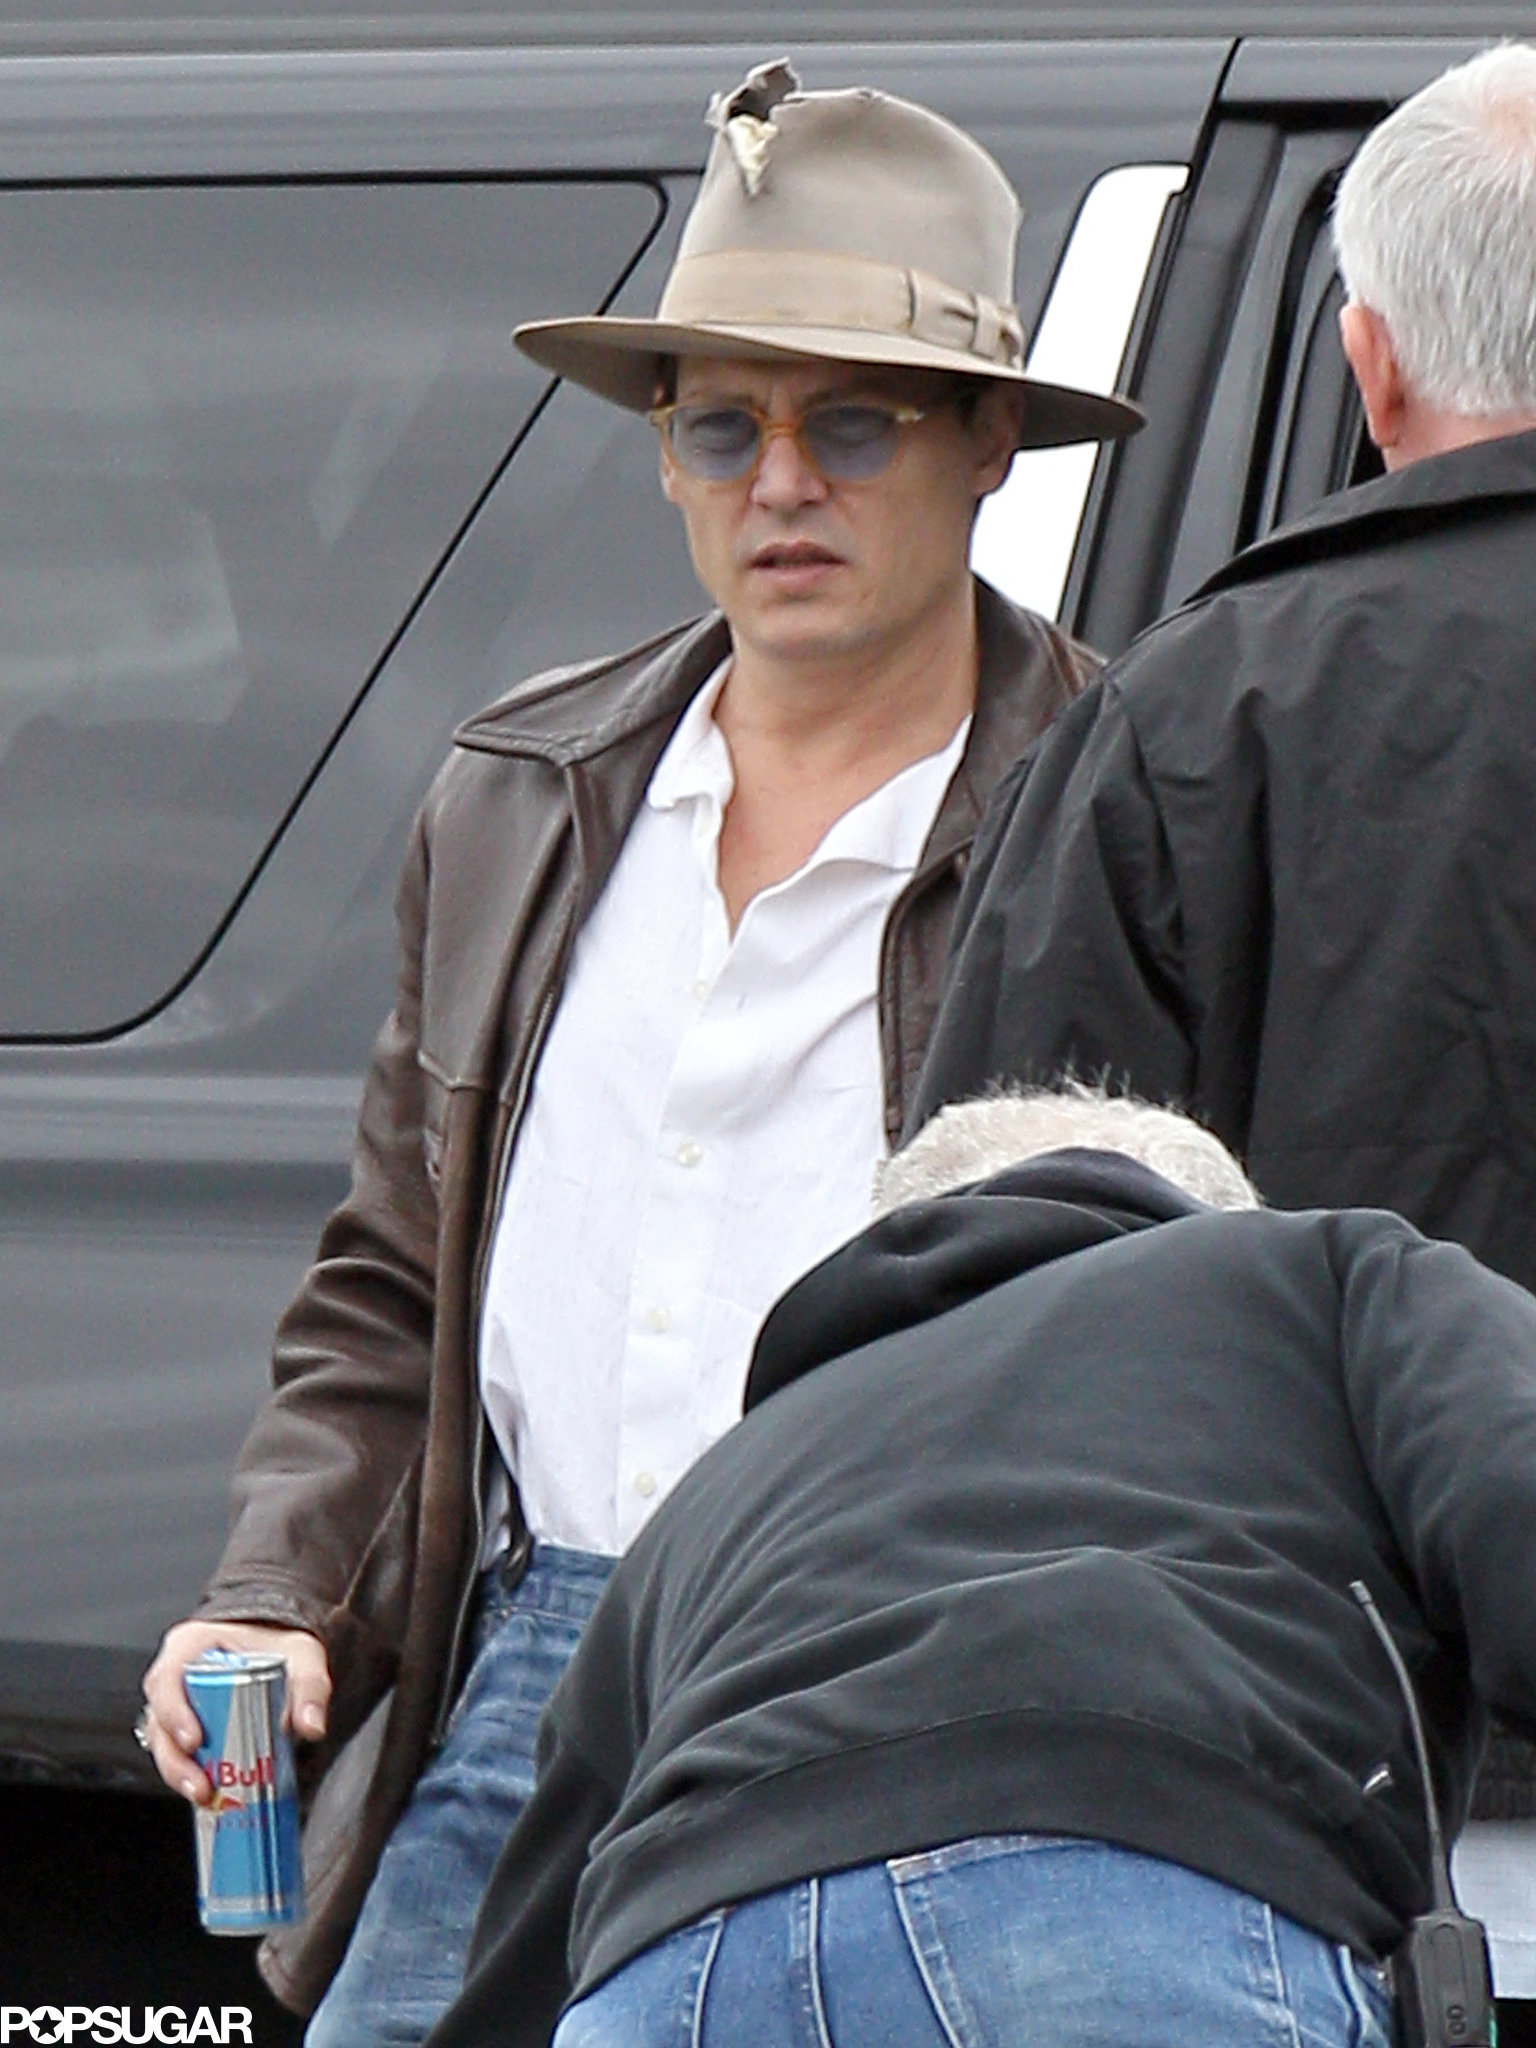 Is That Really You, Johnny Depp?